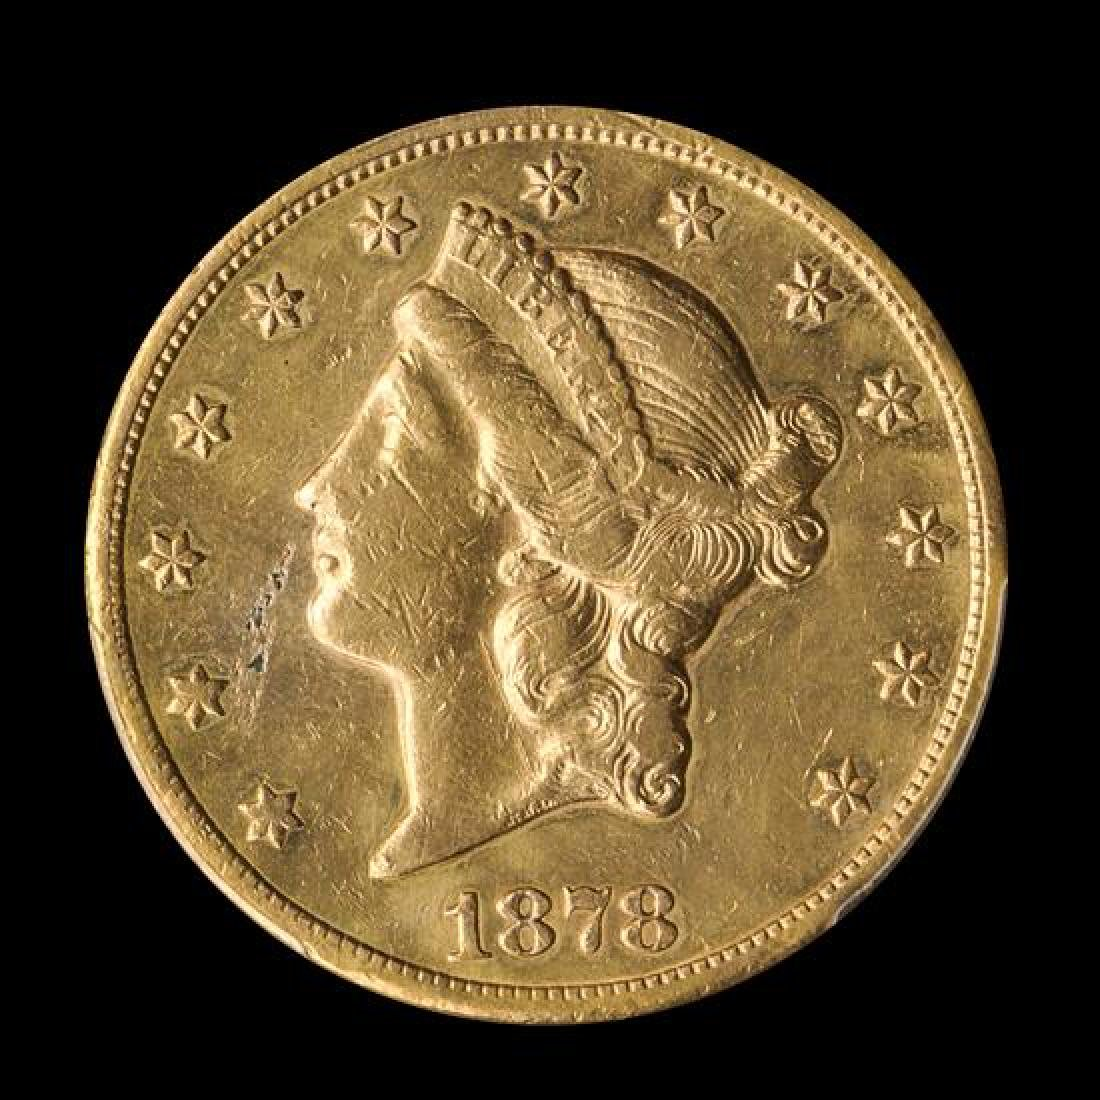 A United States 1878-CC Liberty Head $20 Gold Coin